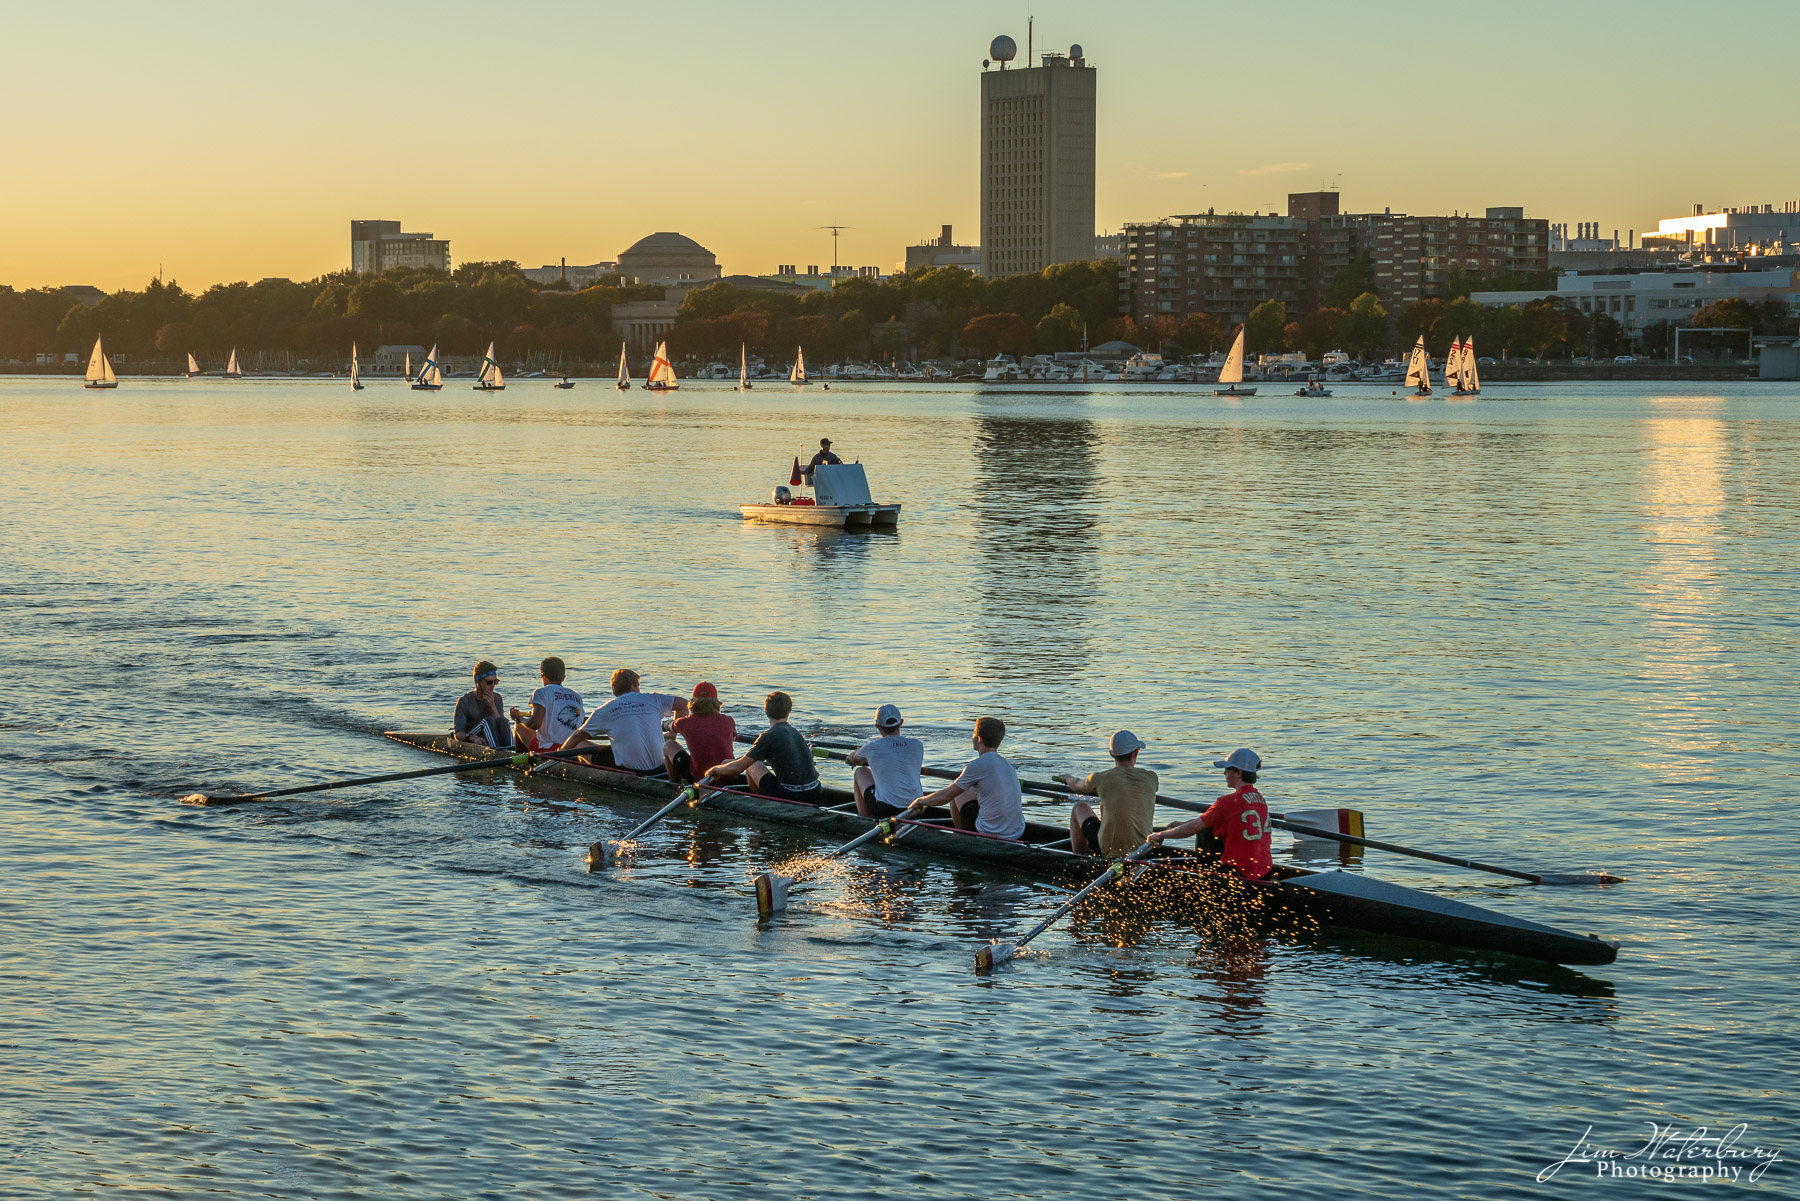 Boats of various types and sizes practice in the late afternoon sunlight on the Charles River in Boston.